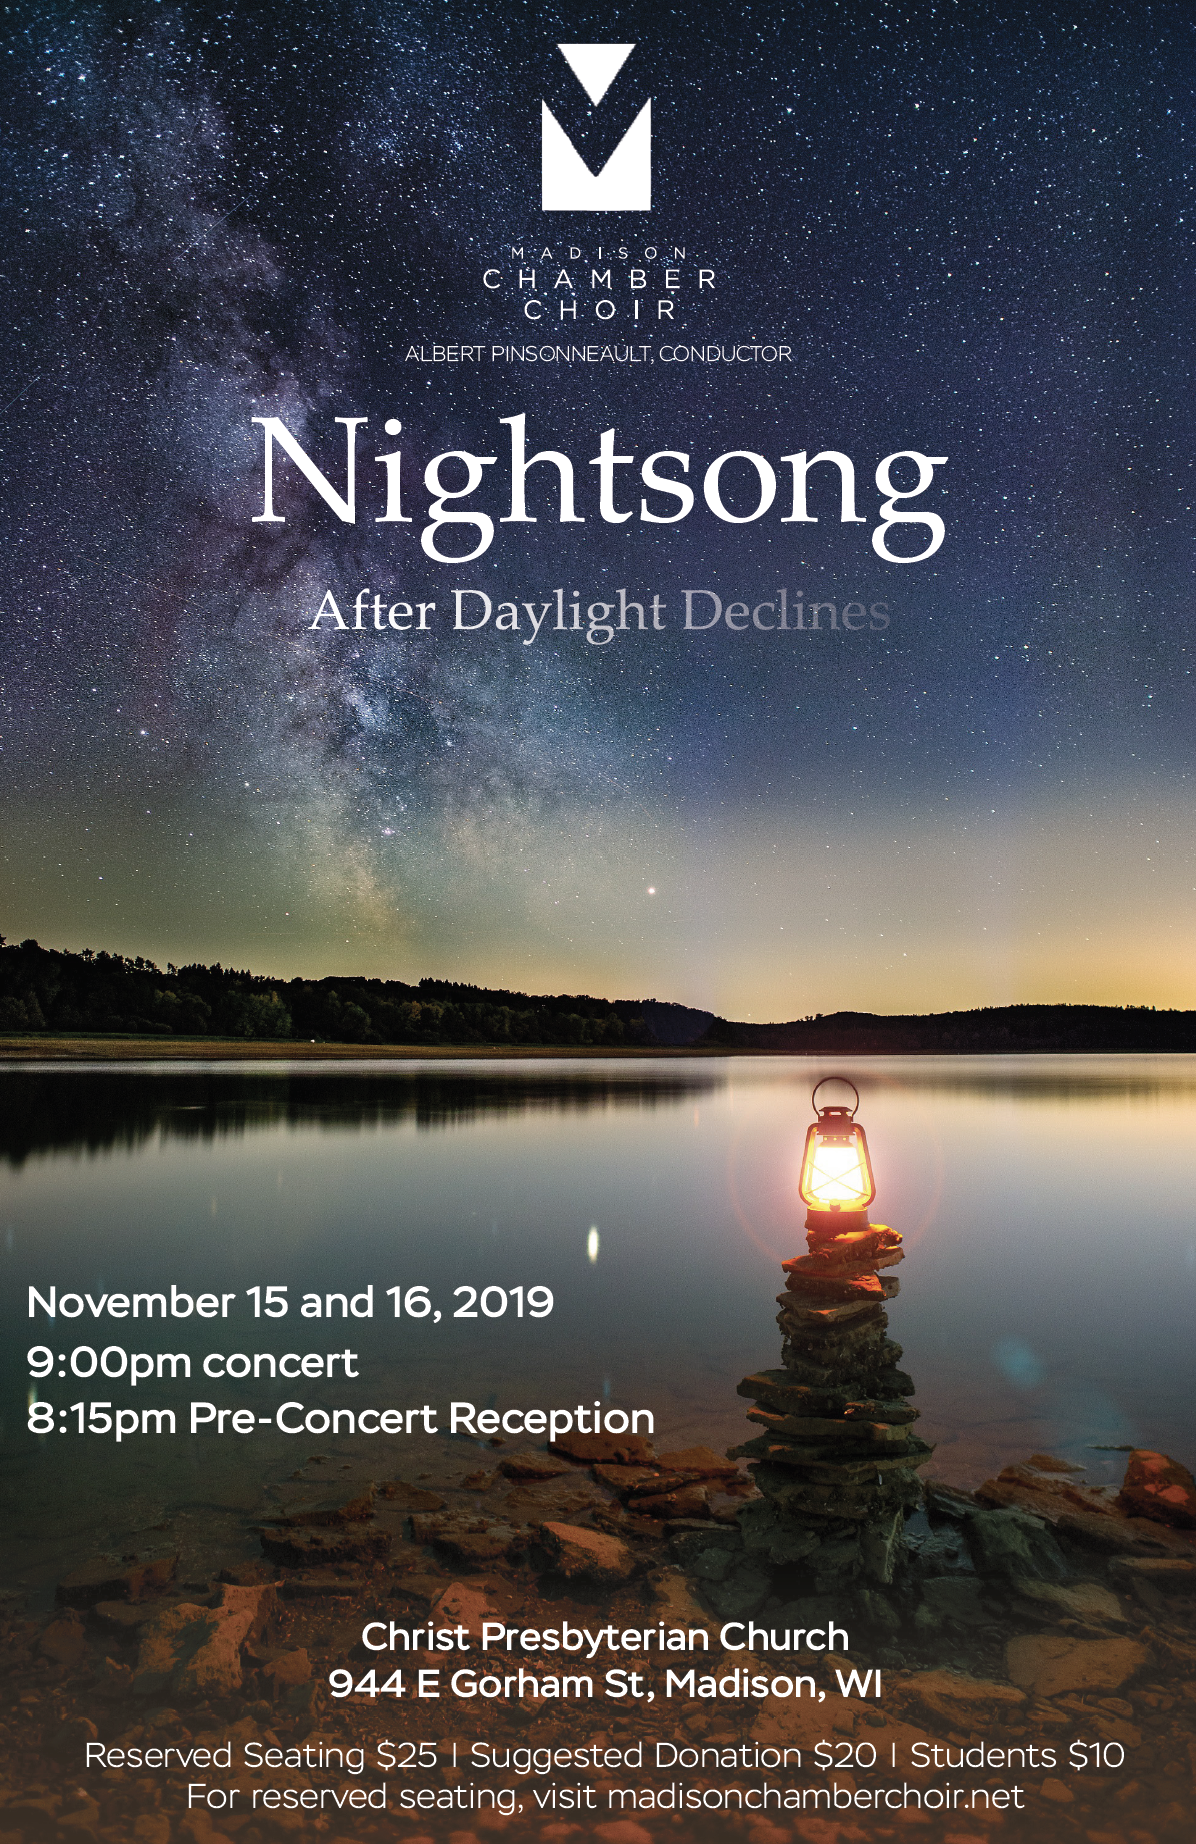 Nightsong - After Daylight Declines.png